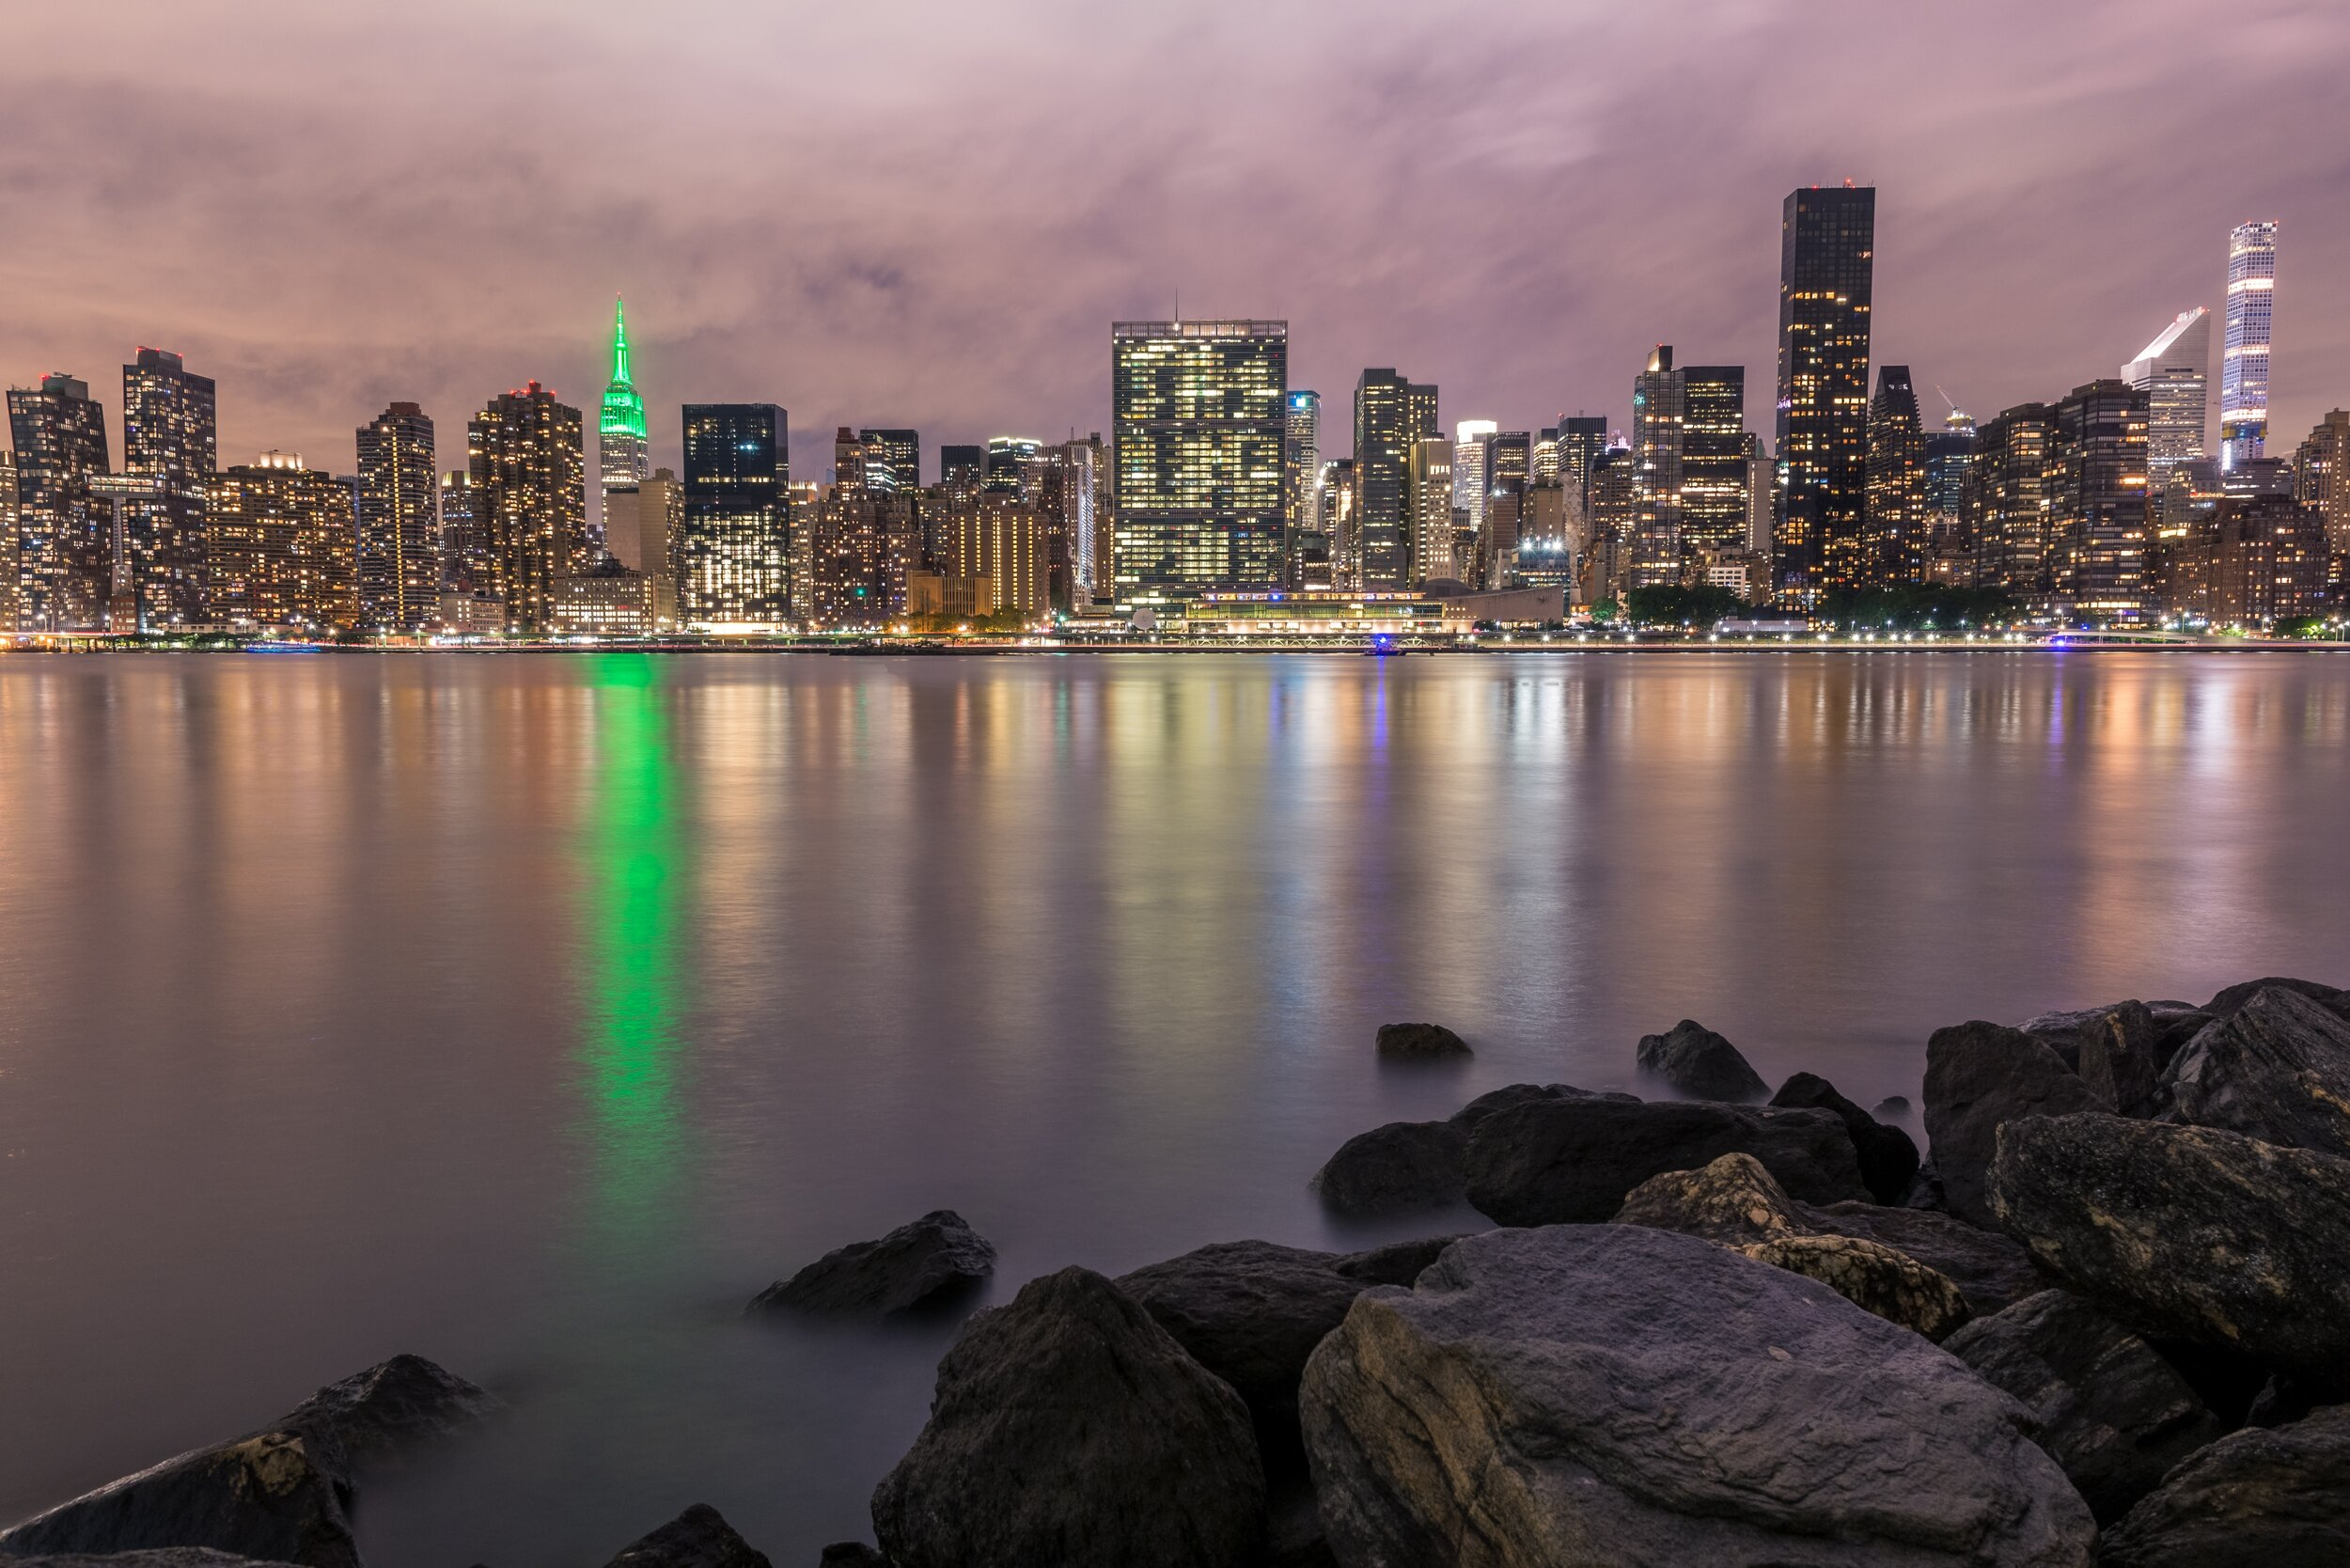 Amazon's plan to construct its second headquarters in Long Island City spurred dispute between the business mogul and social justice activists.  Photo by    Giammarco Boscaro    on    Unsplash   . Thumbnail photo by    Christian Wiediger    on    Unsplash   .